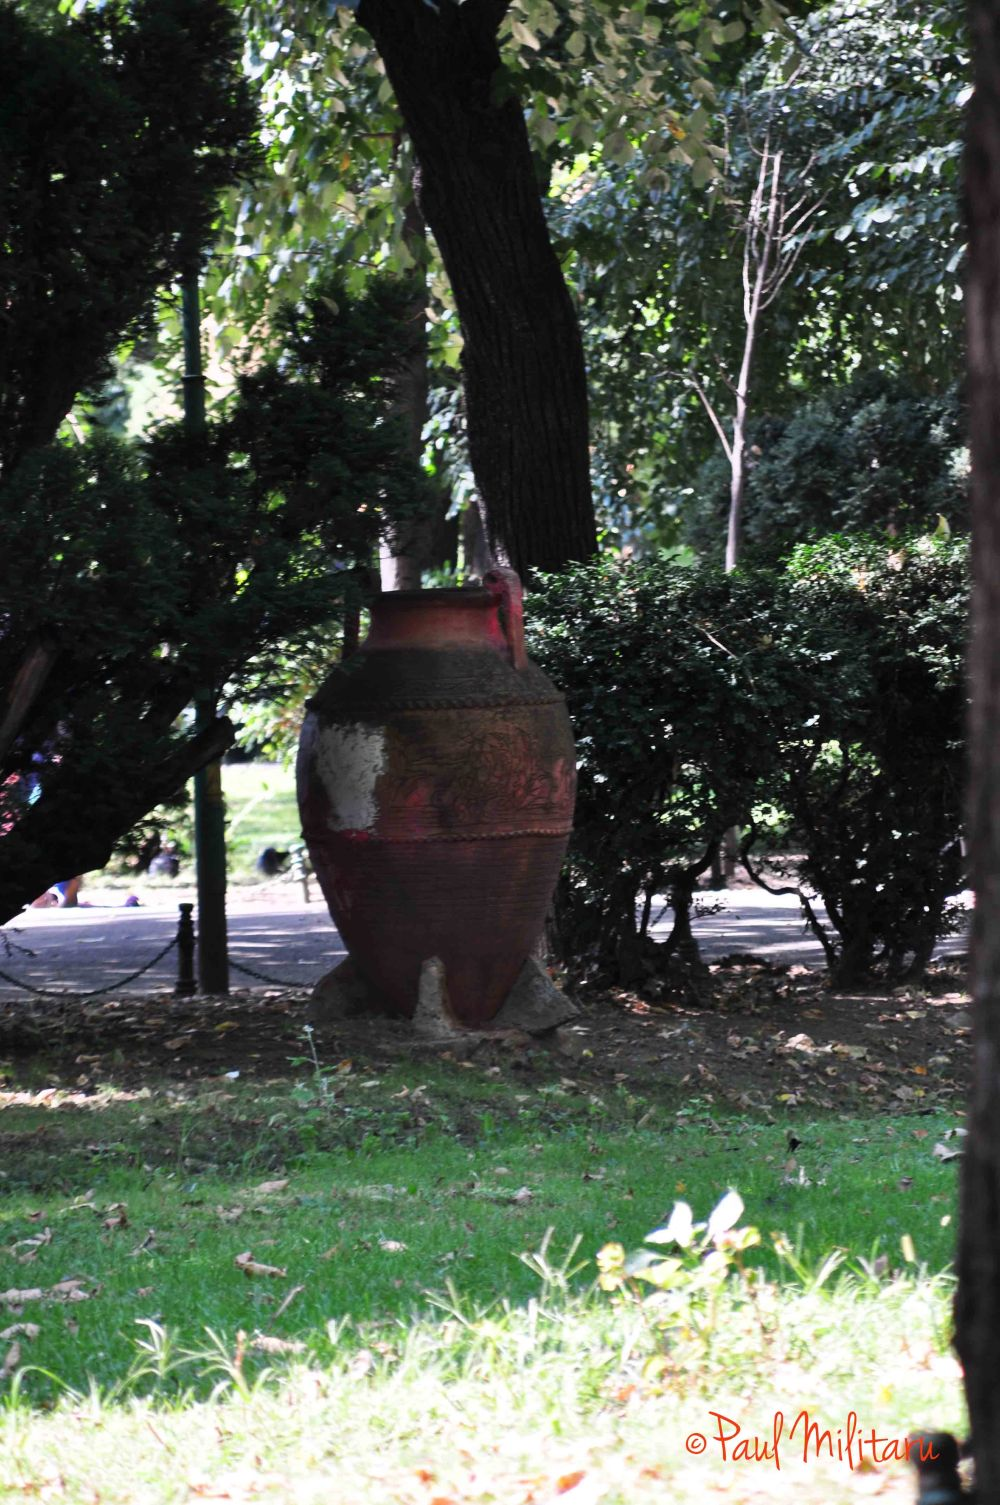 ornamental pot